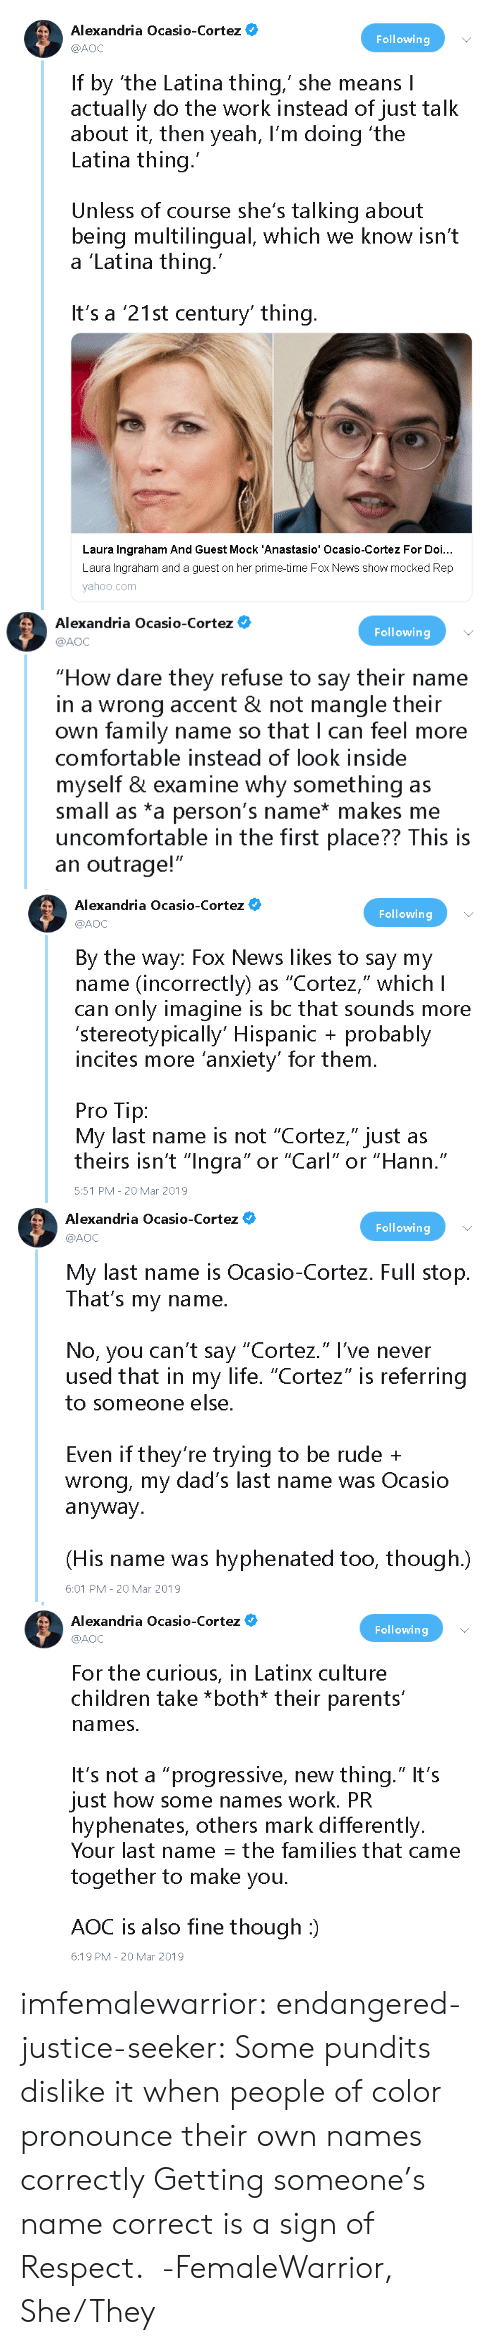 "Progressive: Alexandria Ocasio-Cortez  @AOC  Following  If by 'the Latina thing,' she means I  actually do the work instead of just talk  about it, then yeah, I'm doing 'the  Latina thing.  Unless of course she's talking about  being multilingual, which we know isn't  a 'Latina thing  It's a '21st century' thing  Laura Ingraham And Guest Mock 'Anastasio' Ocasio-Cortez For Doi...  Laura Ingraham and a guest on her prime-time Fox News show mocked Rep  yahoo.com   Alexandria Ocasio-Cortez O  @AOC  Following  ""How dare they refuse to say their name  in a wrong accent & not mangle their  own family name so that I can feel more  comfortable instead of look inside  myself & examine why something as  small as *a person's name* makes me  uncomfortable in the first place?? This is  an outrage!""   Alexandria Ocasio-Cortez*  Following  @AOC  By the way: Fox News likes to say my  name (incorrectly) as ""Cortez,"" which lI  can only imagine is bc that sounds more  'stereotypically' Hispanic probably  incites more anxiety' for them  Pro Tip:  My last name is not ""Cortez,"" just as  theirs isn't ""Inara"" or ""Carl"" or ""Hann  .""  5:51 PM -20 Mar 2019   Alexandria Ocasio-Cortez  Following  @AOC  My last name is Ocasio-Cortez. Full stop.  That's my name.  No, you can't say ""Cortez."" l've never  used that in my life. ""Cortez"" is referring  to someone else  Even if they're trying to be rude +  wrong, my dad's last name was Ocasio  anyway.  (His name was hyphenated too, though.)  6:01 PM 20 Mar 2019   Alexandria Ocasio-Cortez  @AOC  Following  For the curious, in Latinx culture  children take *both* their parents'  names.  It's not a ""progressive, new thing."" It's  just how some names work. PR  hyphenates, others mark differently.  Your last name: the families that came  together to make you.  AOC is also fine though :)  6:19 PM-20 Mar 2019 imfemalewarrior:  endangered-justice-seeker:  Some pundits dislike it when people of color pronounce their own names correctly   Getting someone's name correct is a sign of Respect.  -FemaleWarrior, She/They"